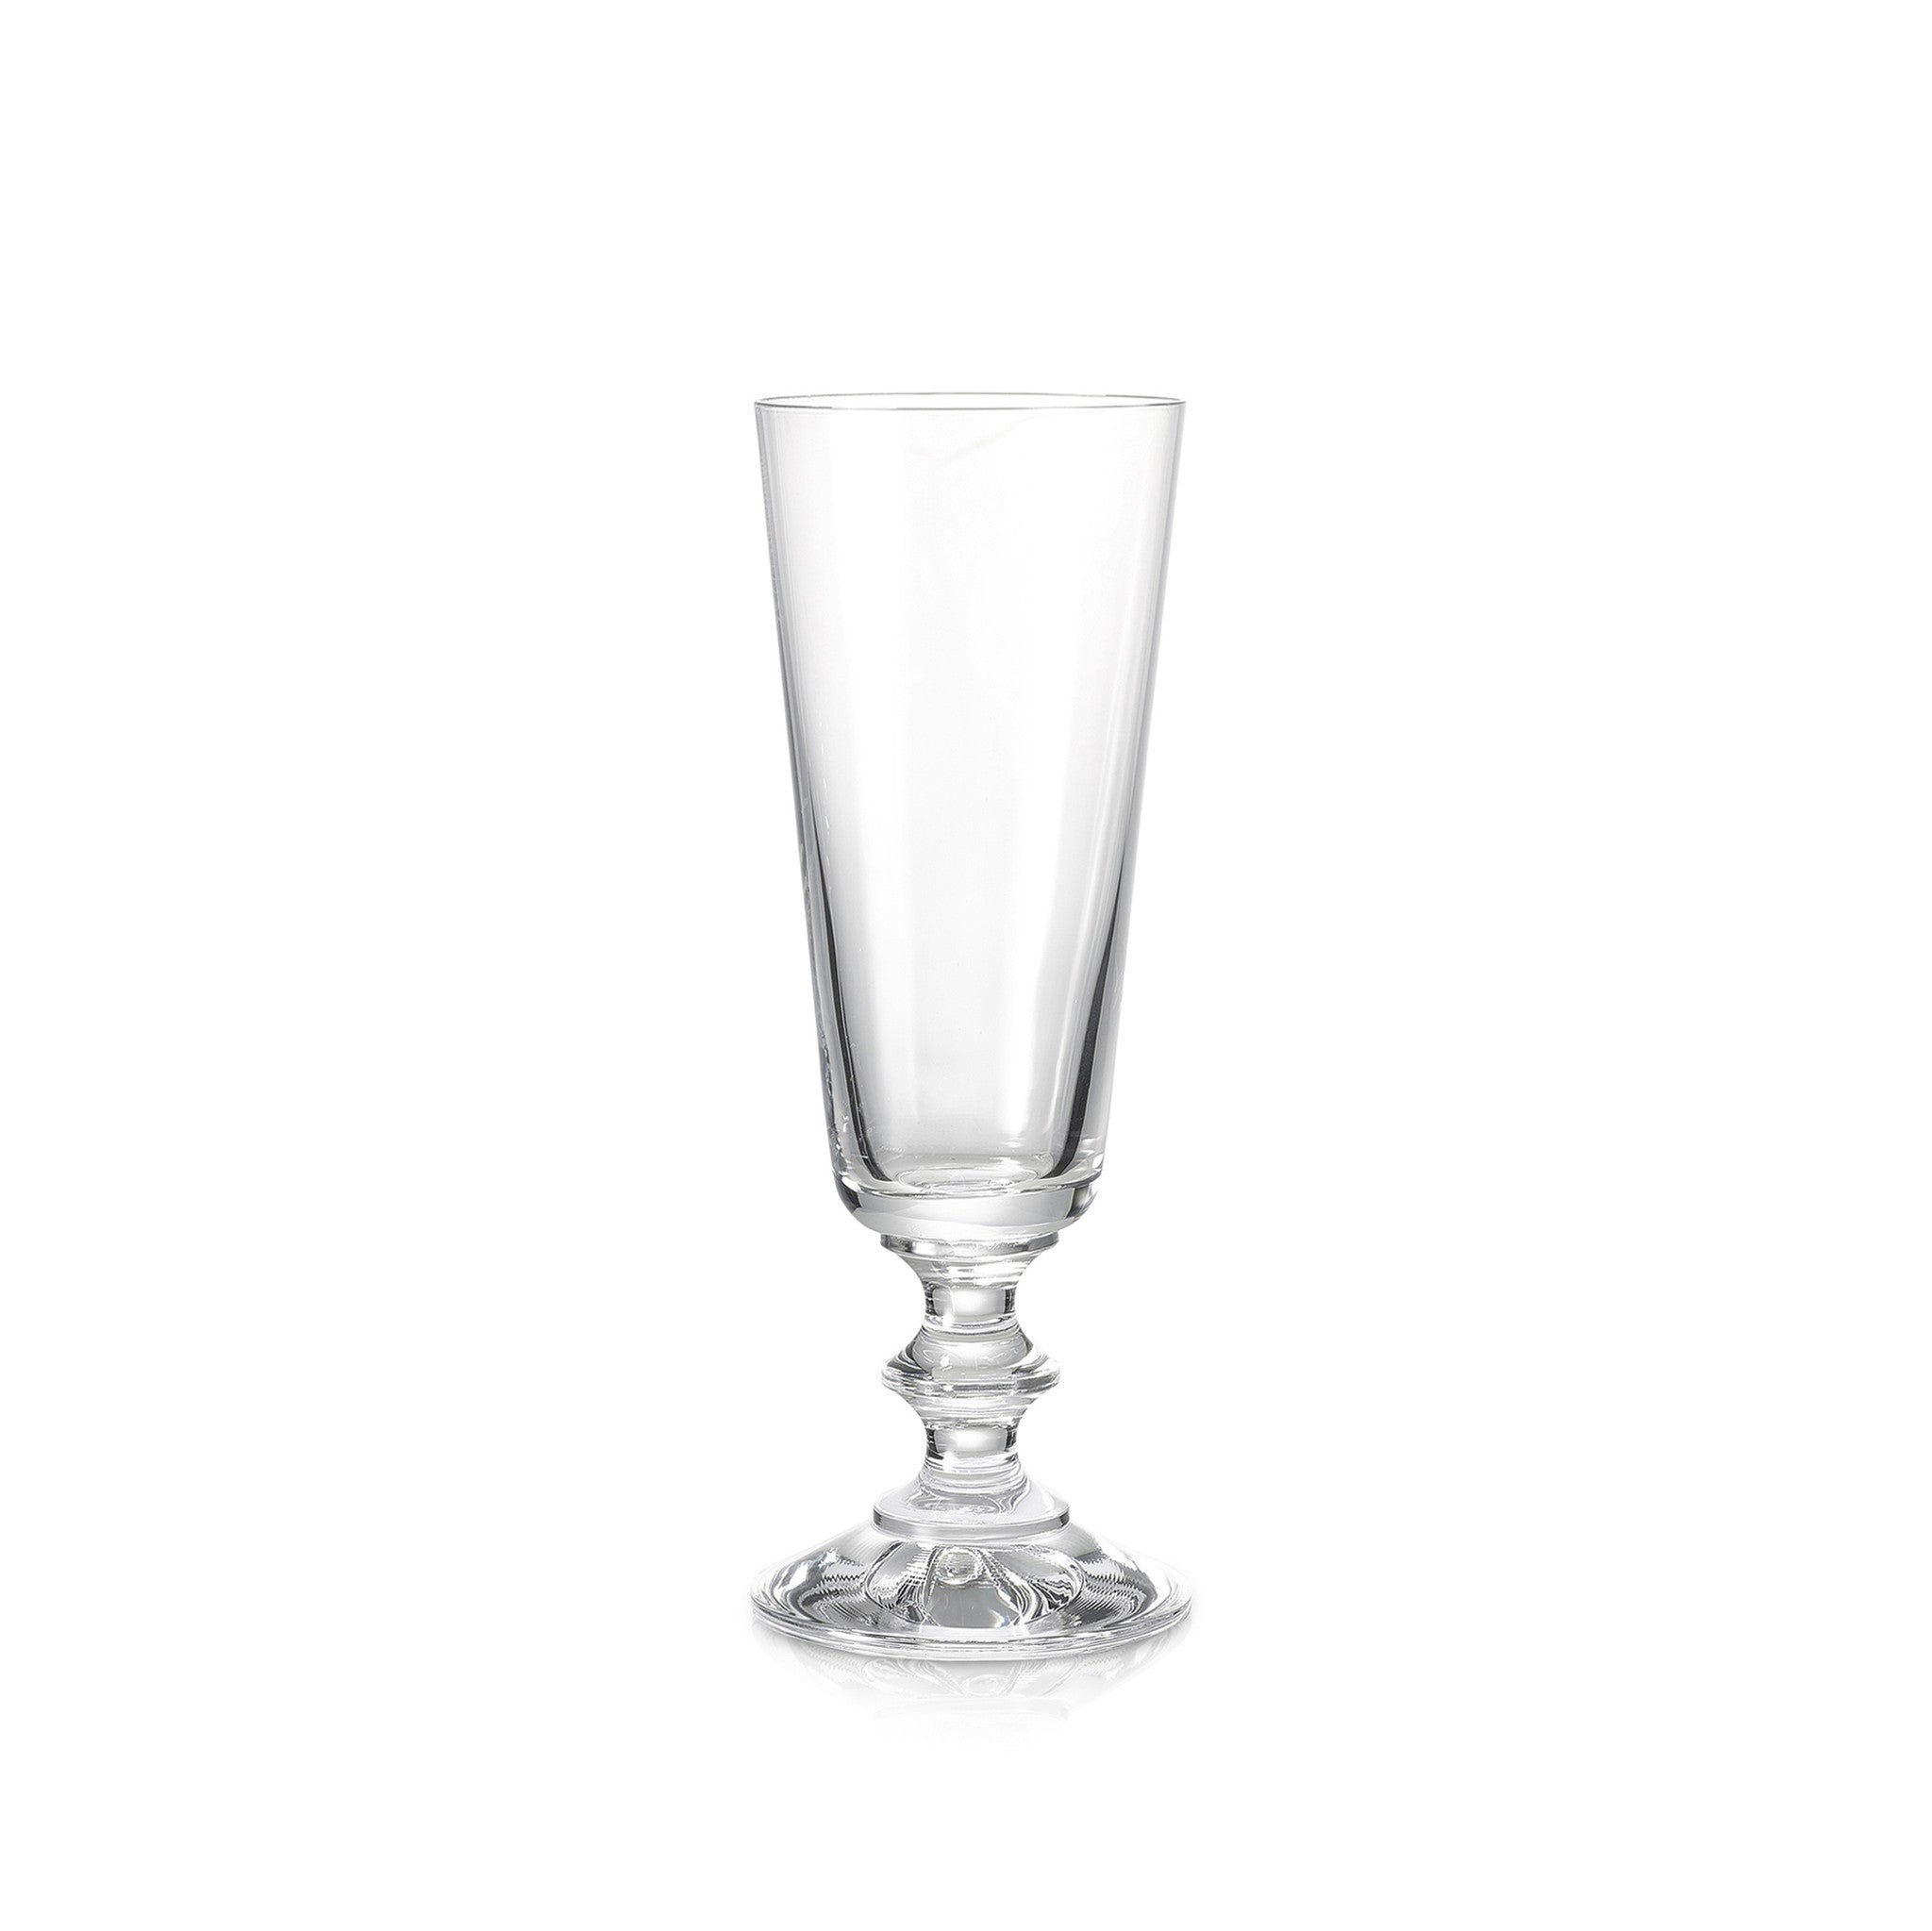 S&B Classic Champagne Flute, 17cl